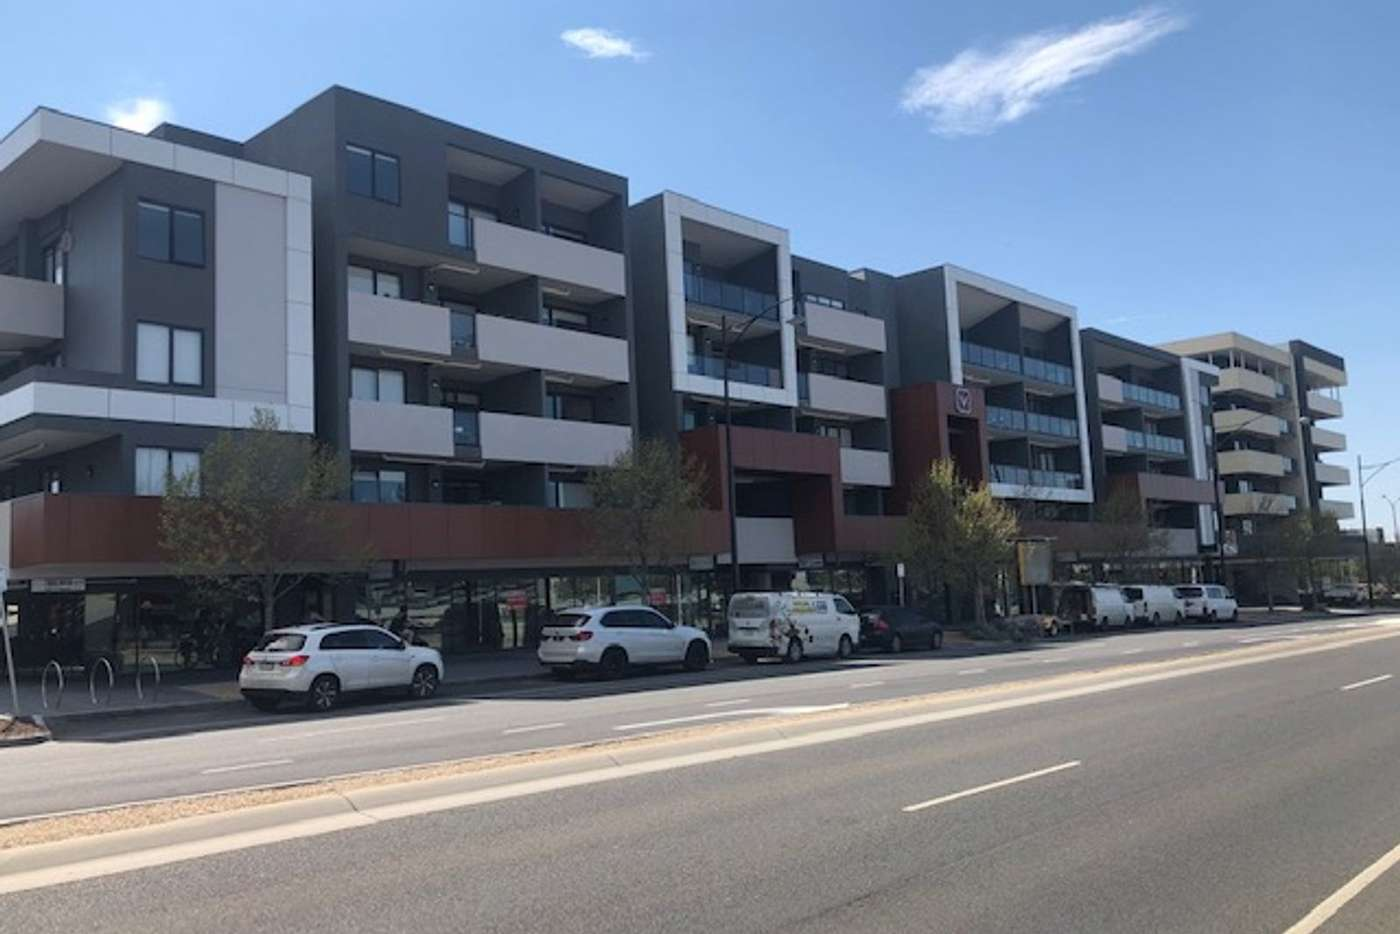 Main view of Homely apartment listing, 418/9 Commercial Road, Caroline Springs VIC 3023